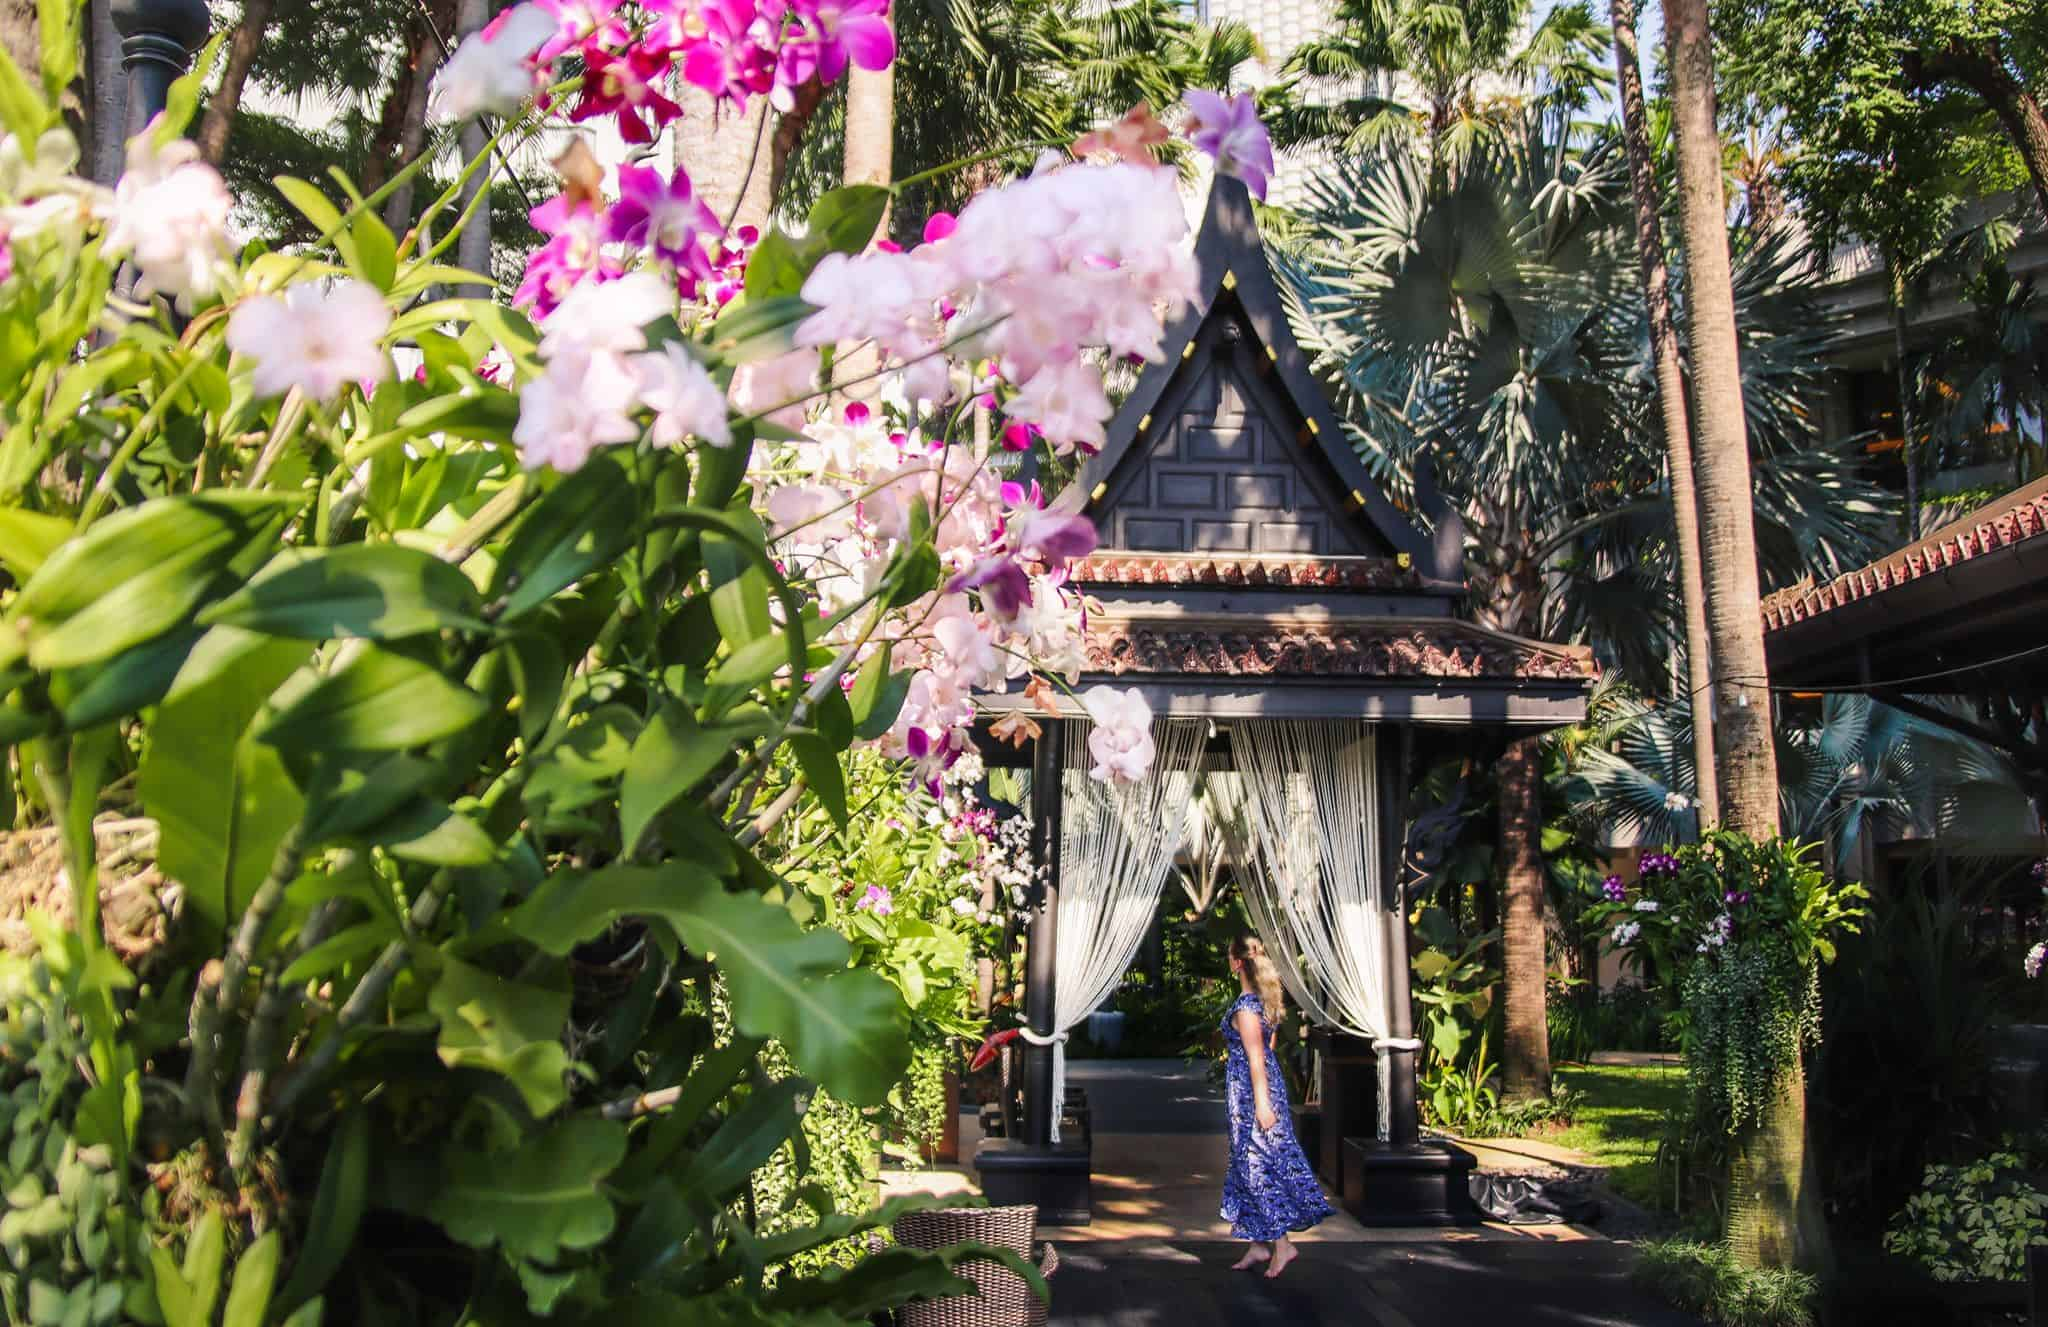 Shangri-La Bangkok by Melanie Travel & Treasures